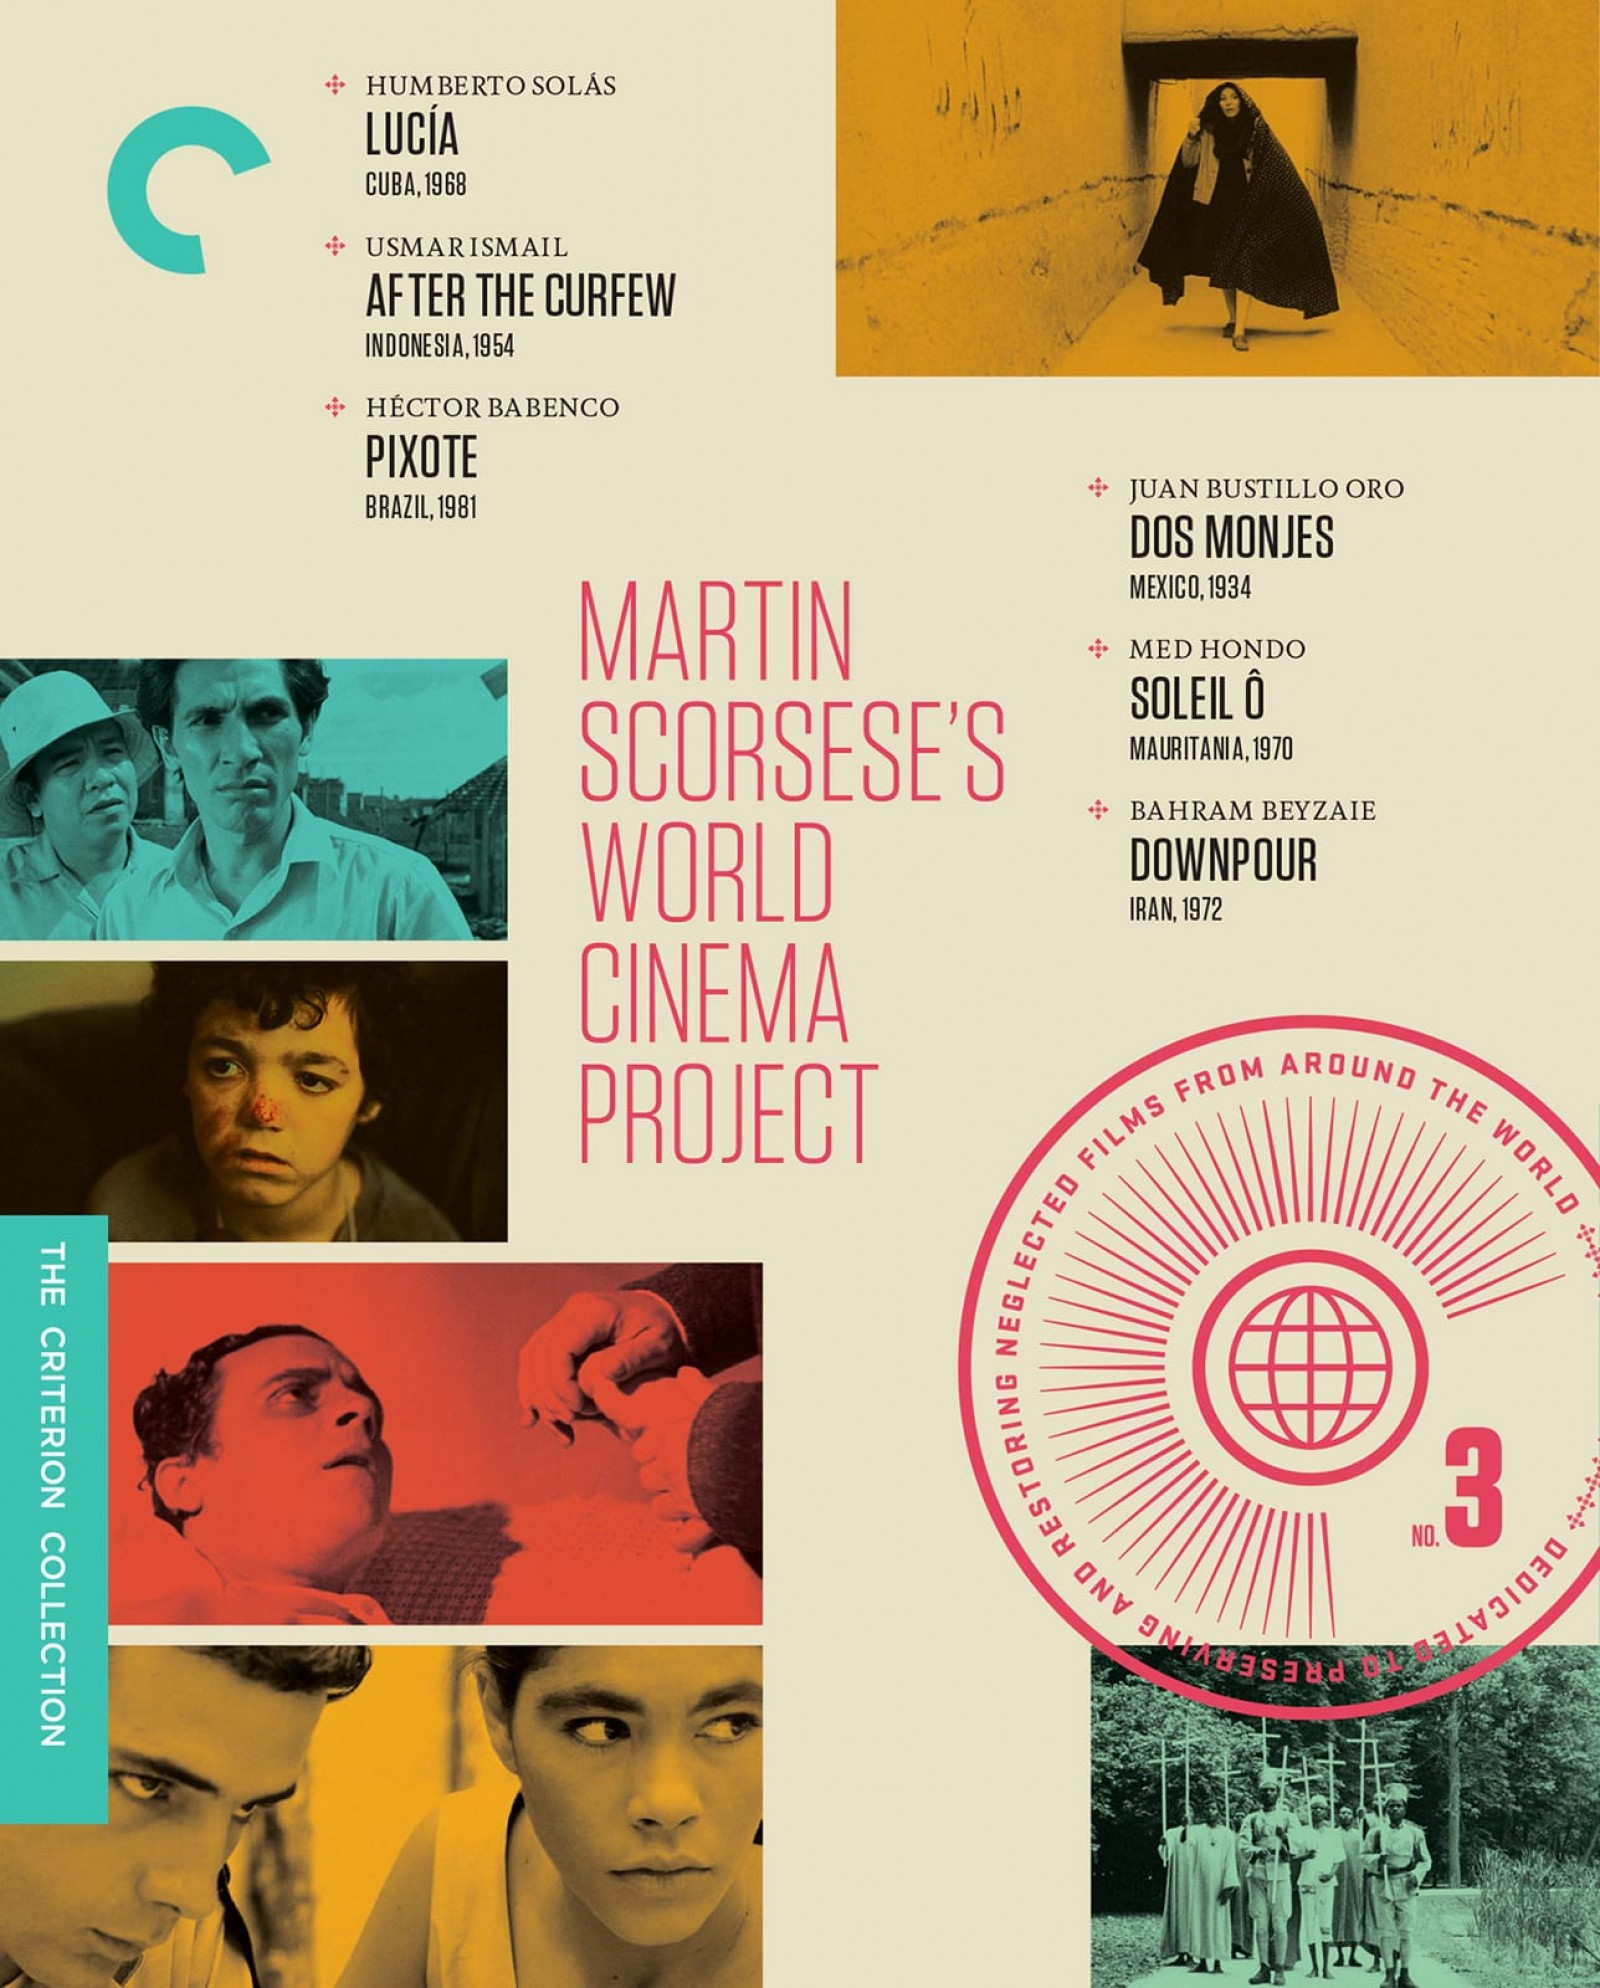 Martin Scorsese's World Cinema Project No. 3